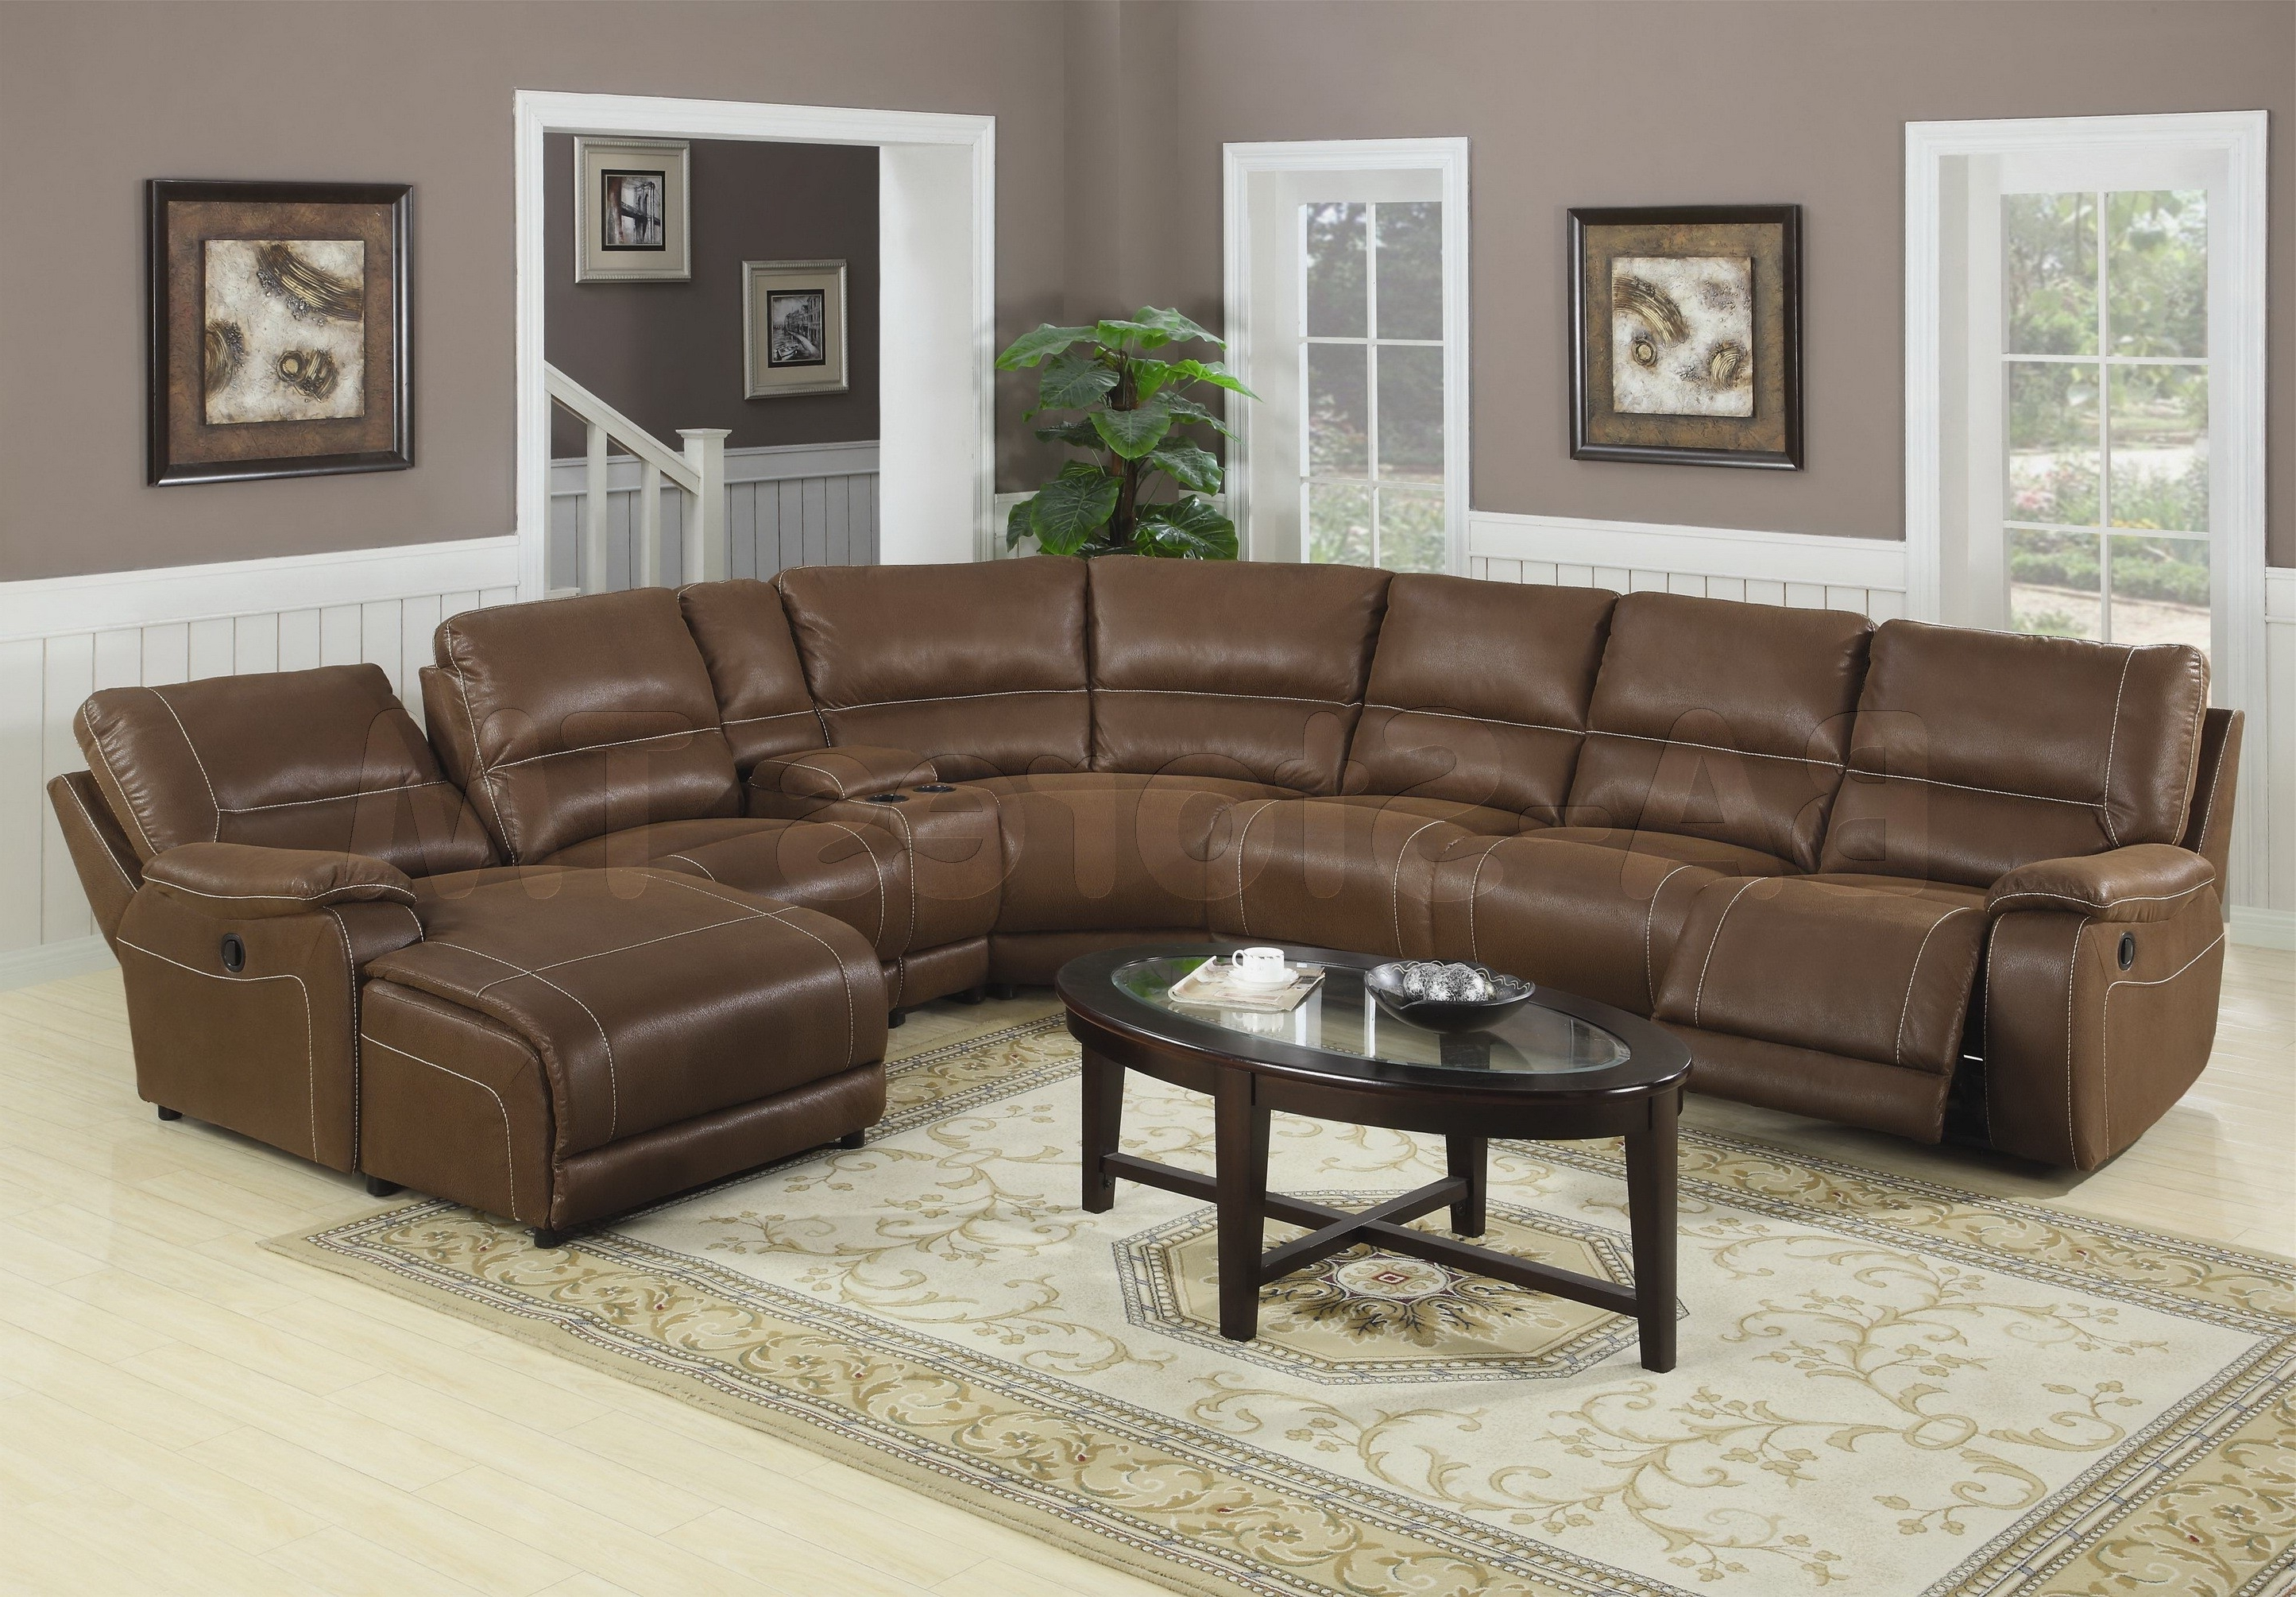 Extra Large Sectional Sofas With Current Extra Large Leather Sectional Sofa With Recliner And Chaise Feat (View 5 of 20)